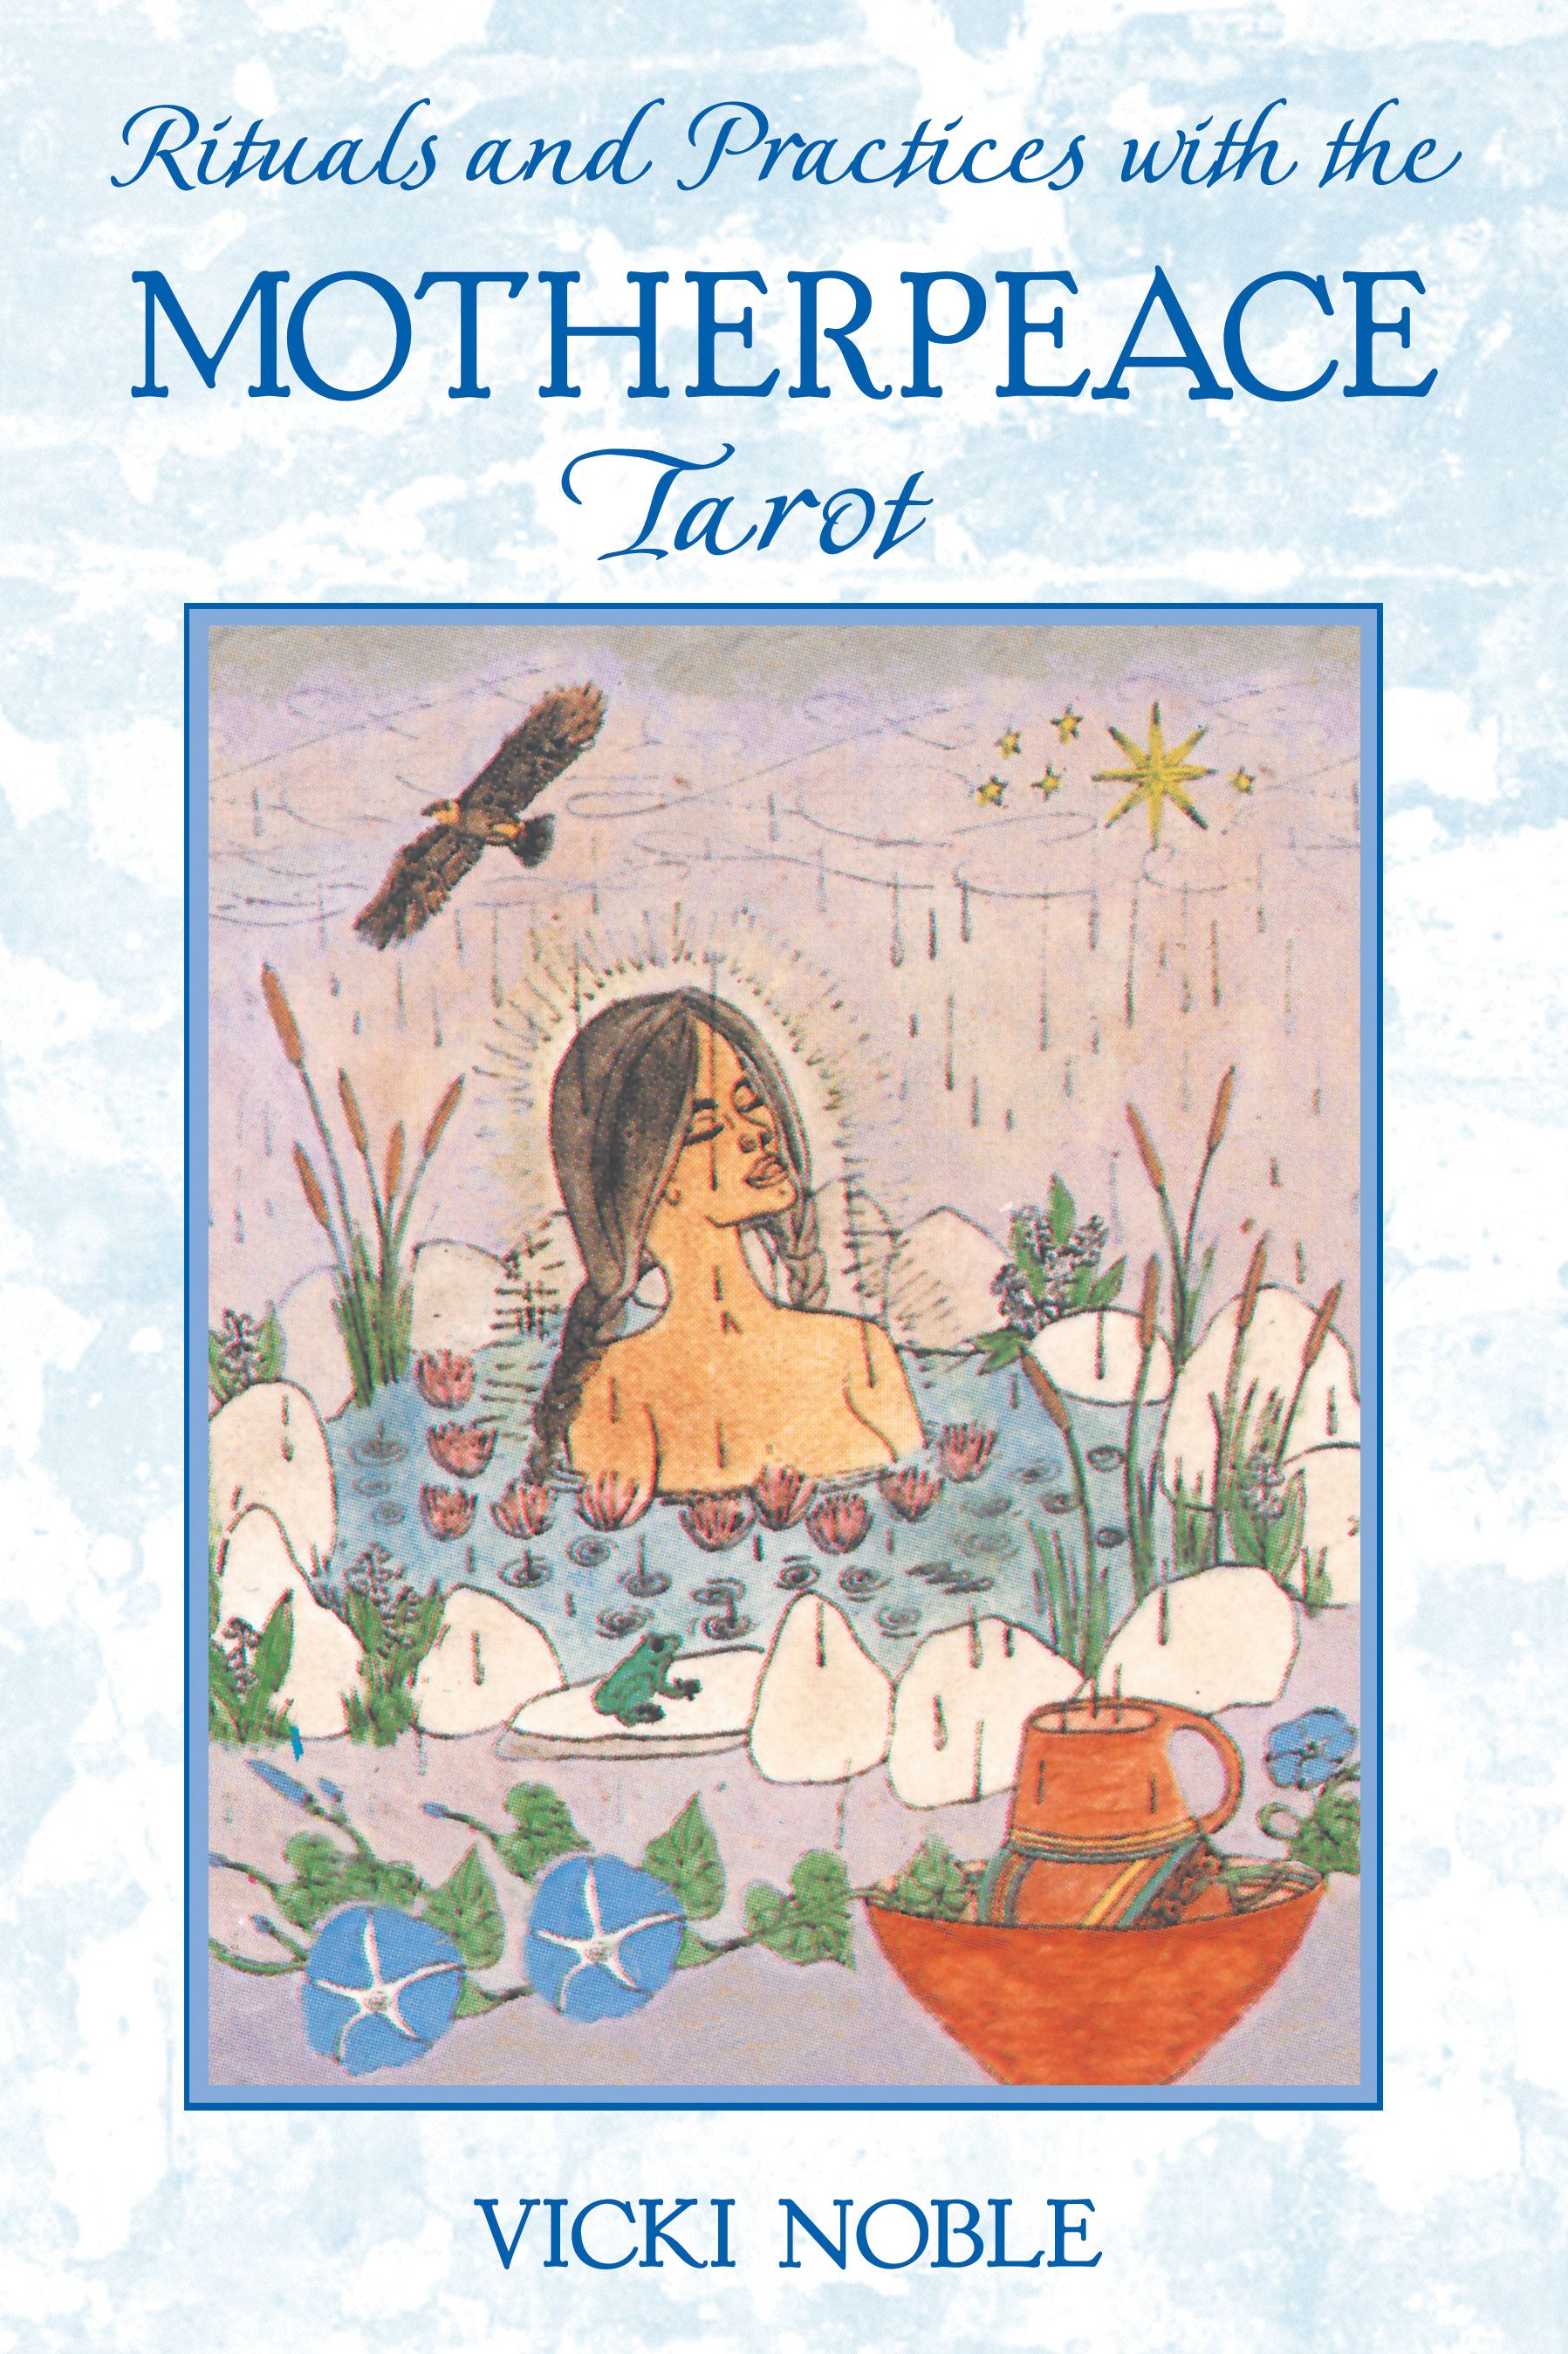 Rituals and practices with the motherpeace tarot 9781591430087 hr